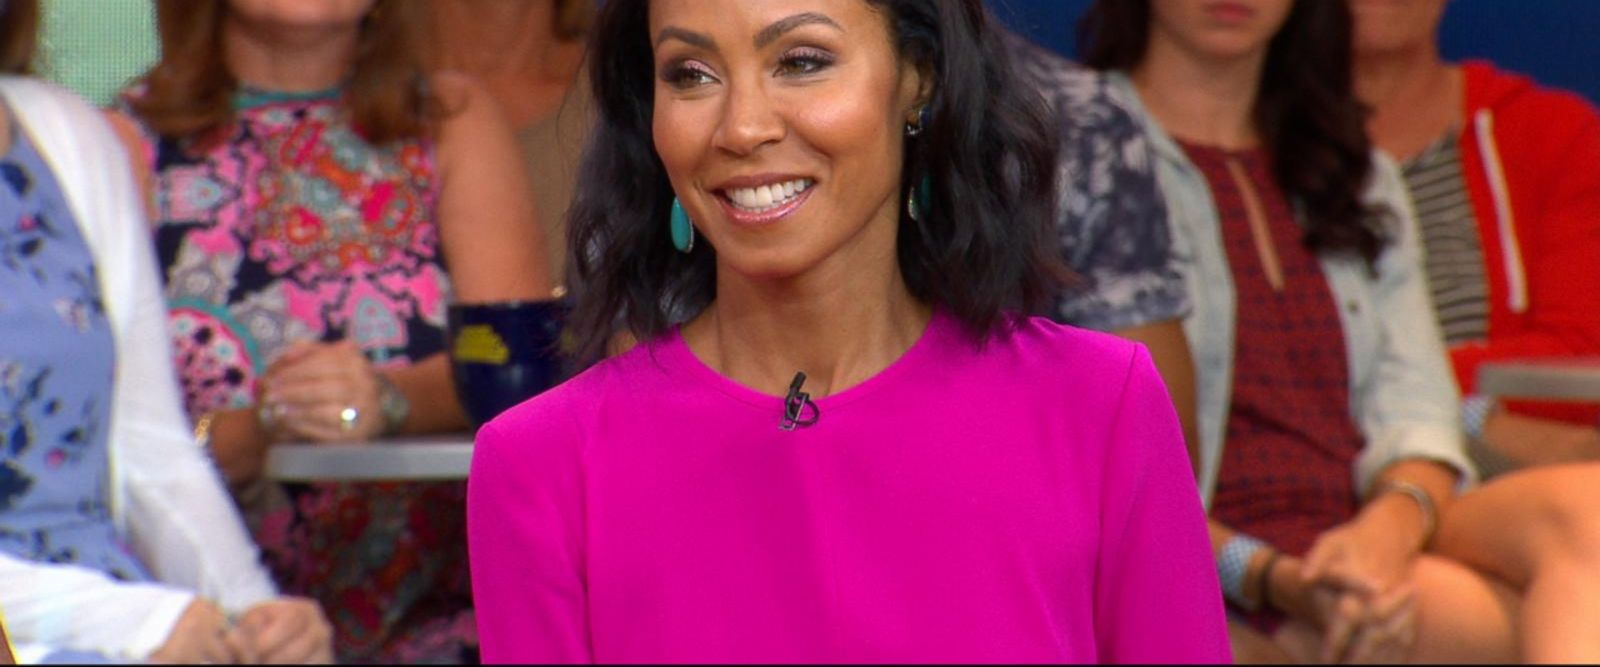 VIDEO: Jada Pinkett Smith dishes on 'Girls Trip'